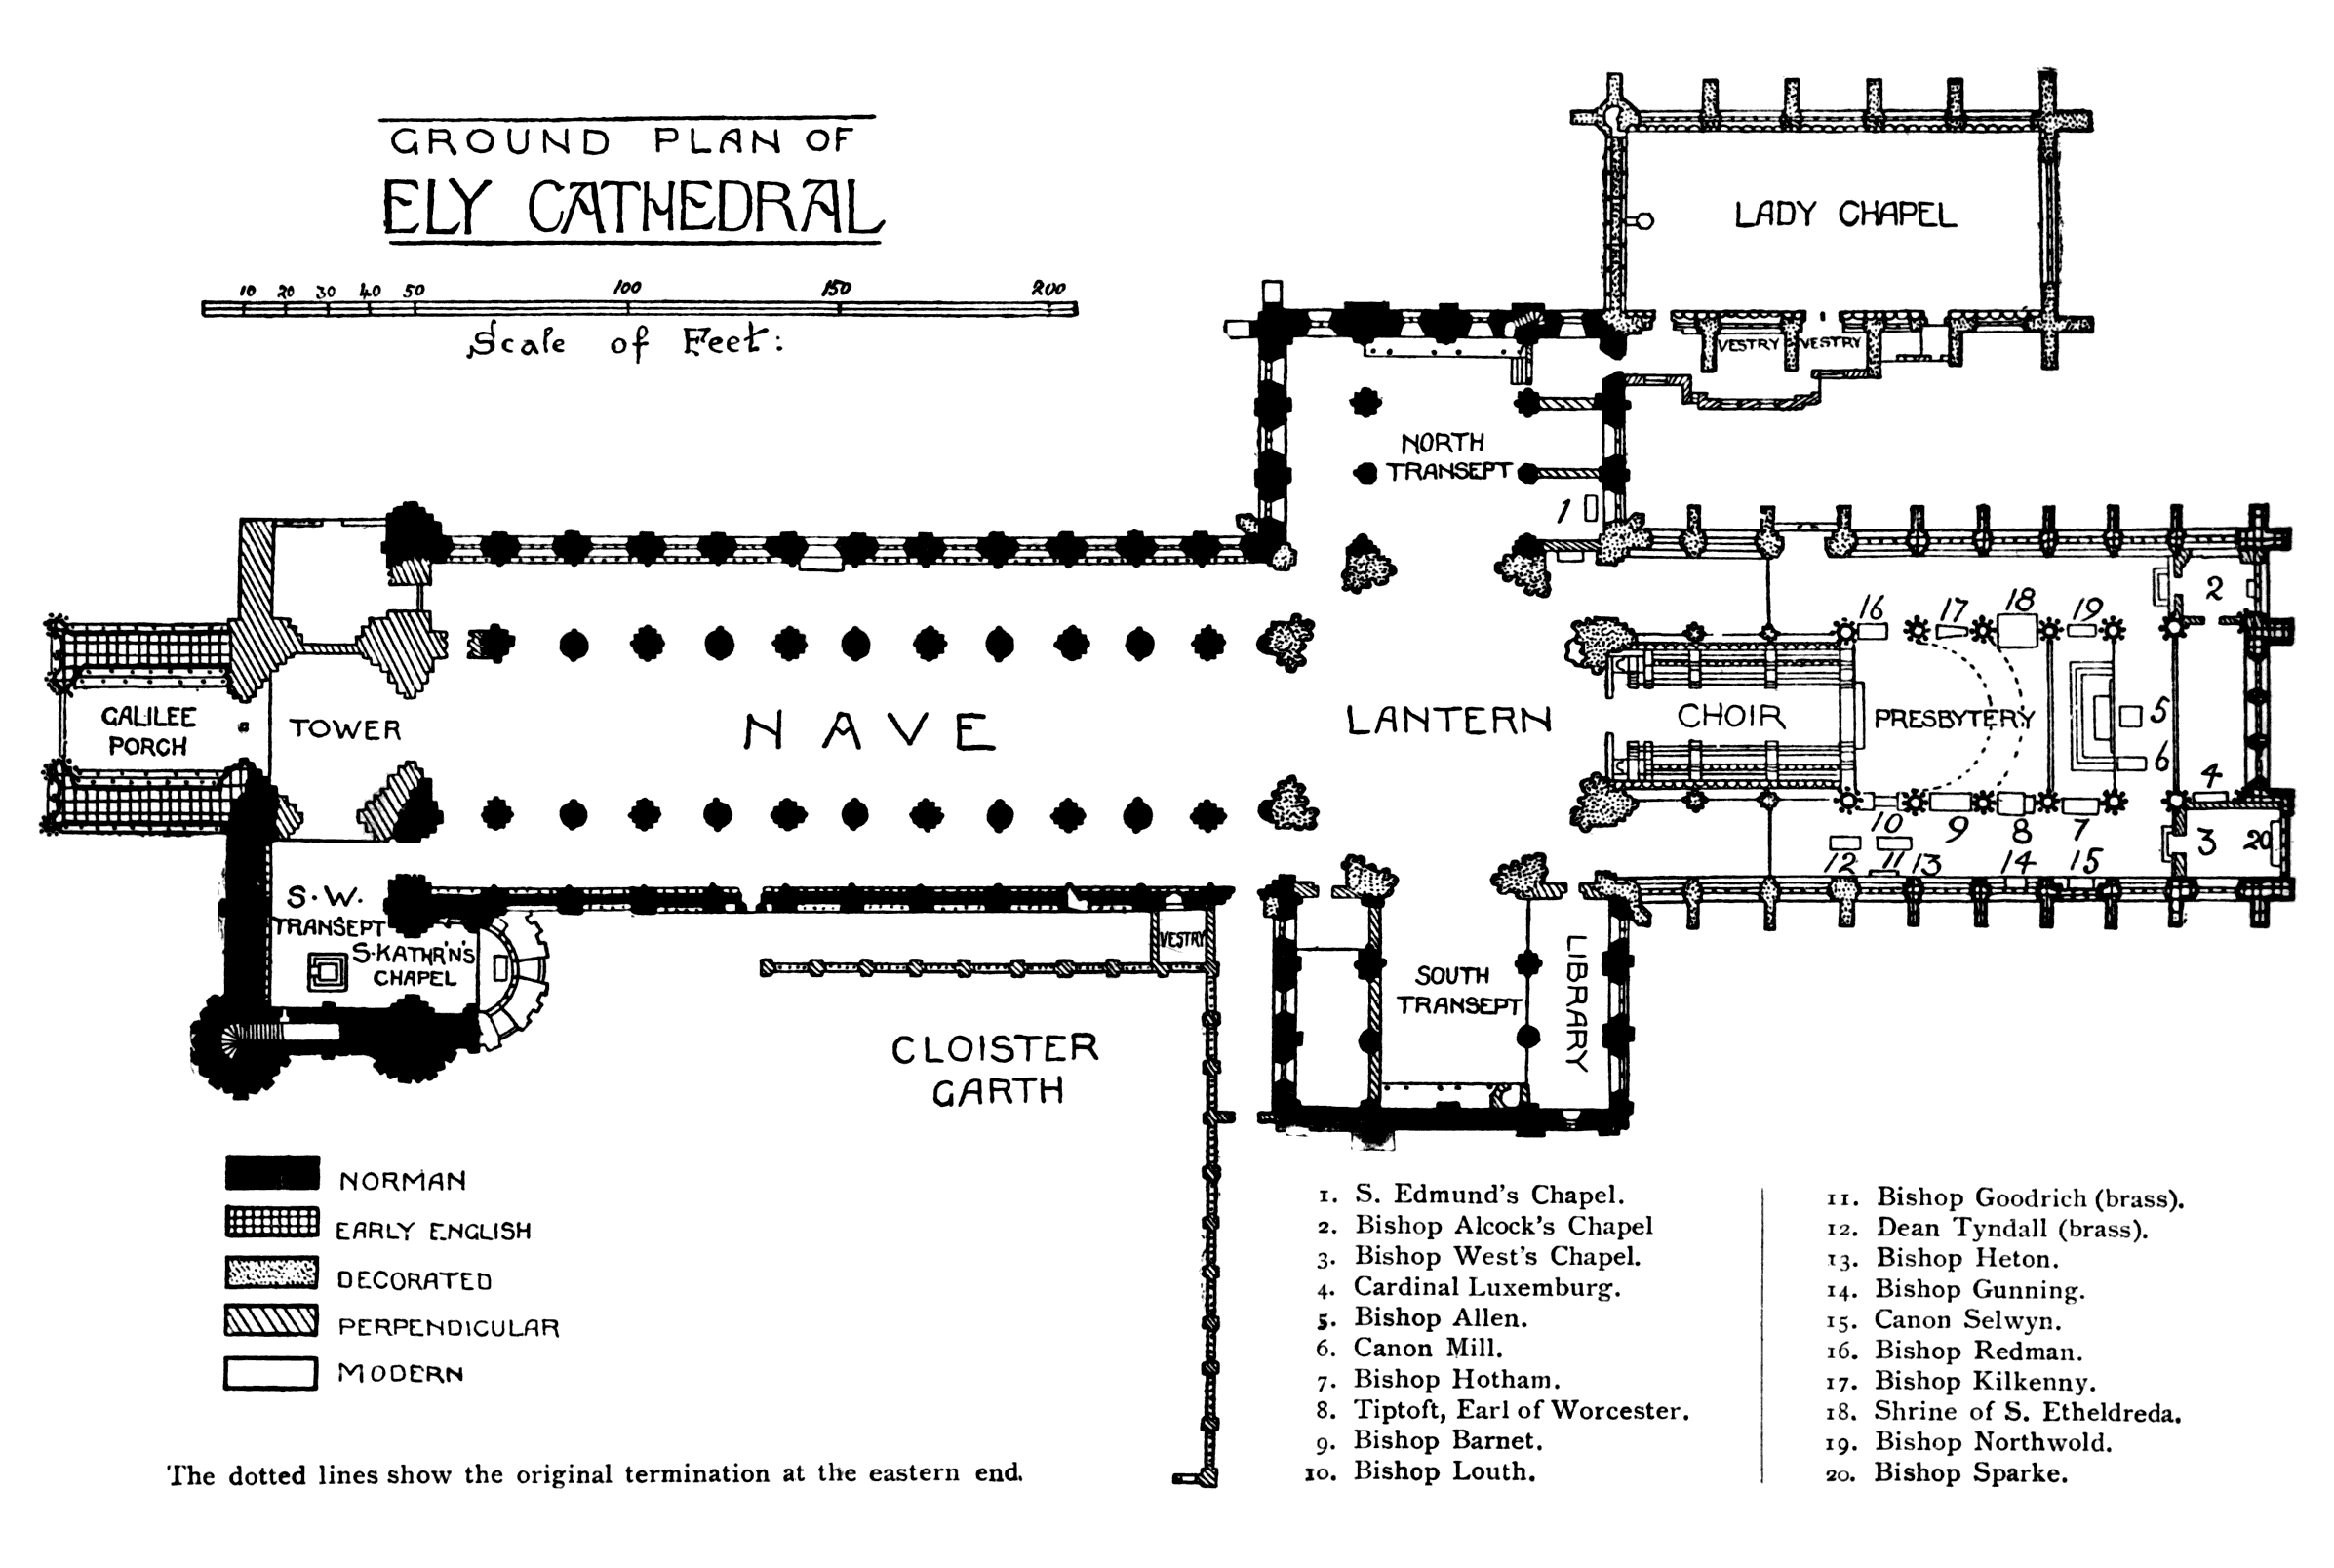 Ground Plan Of Ely Cathedral